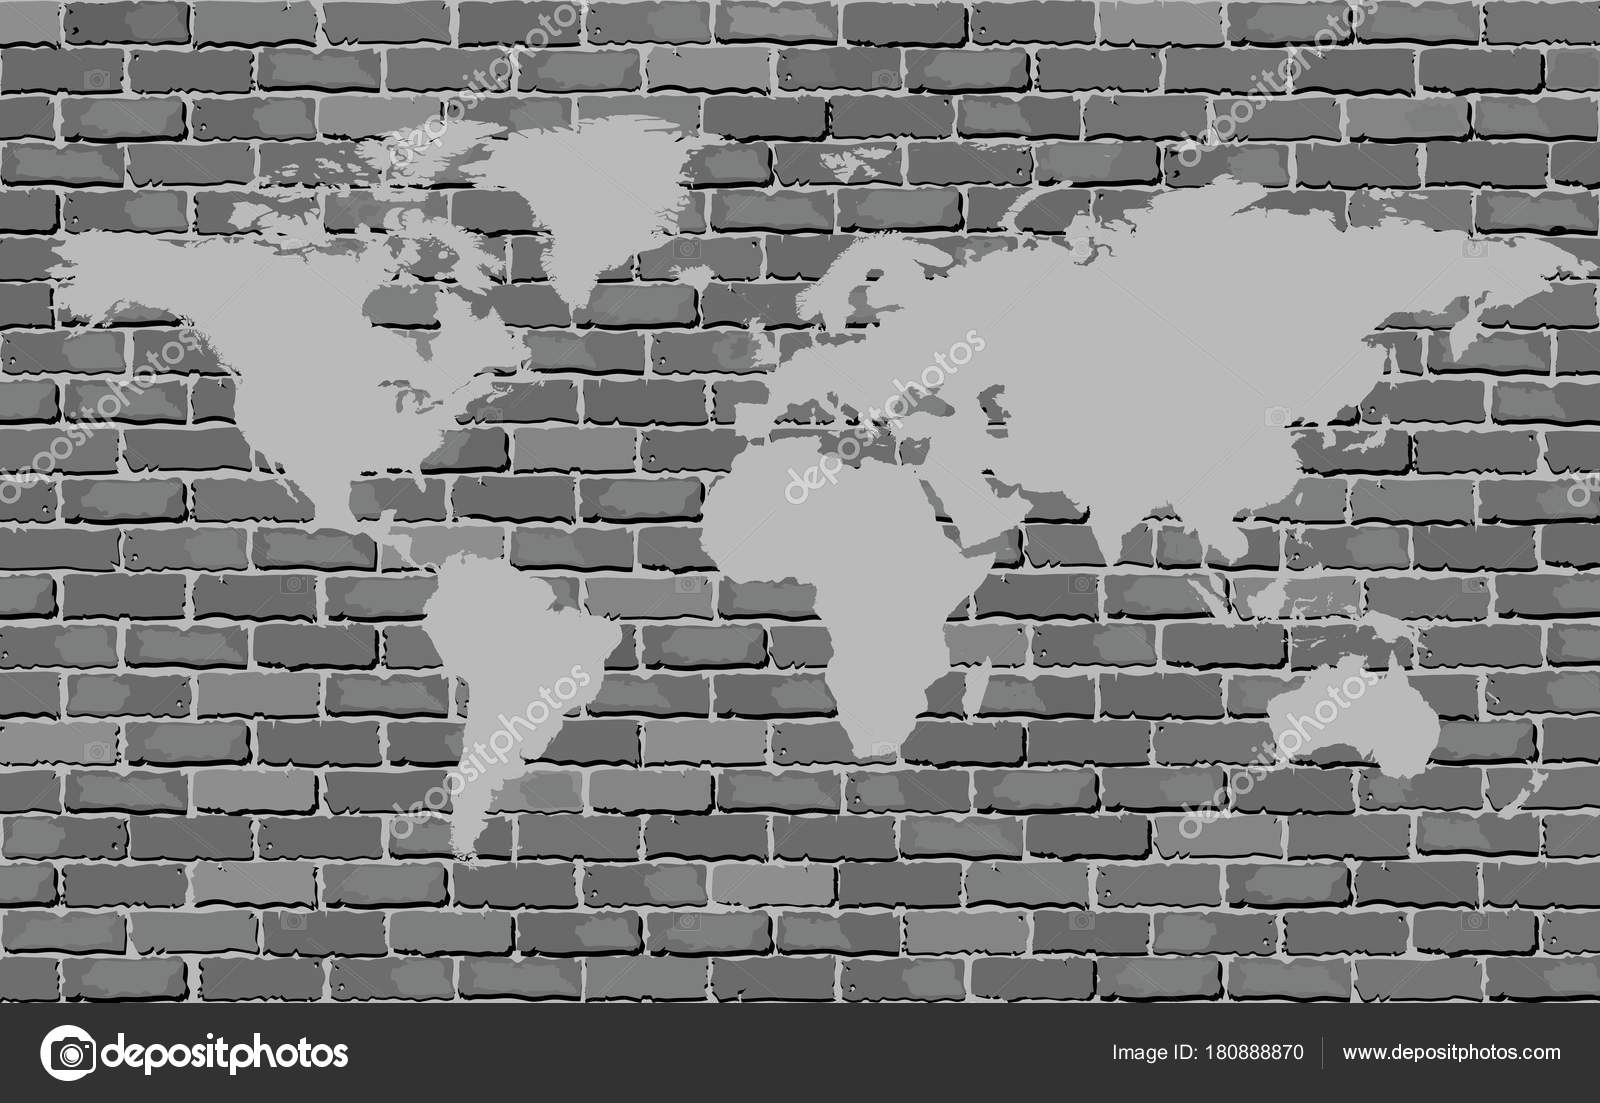 Black white world map brick wall vector image brick wall stock black and white world map on a brick wall vector image brick wall texture background soft tone gray color with world map vector by dusica69 gumiabroncs Choice Image